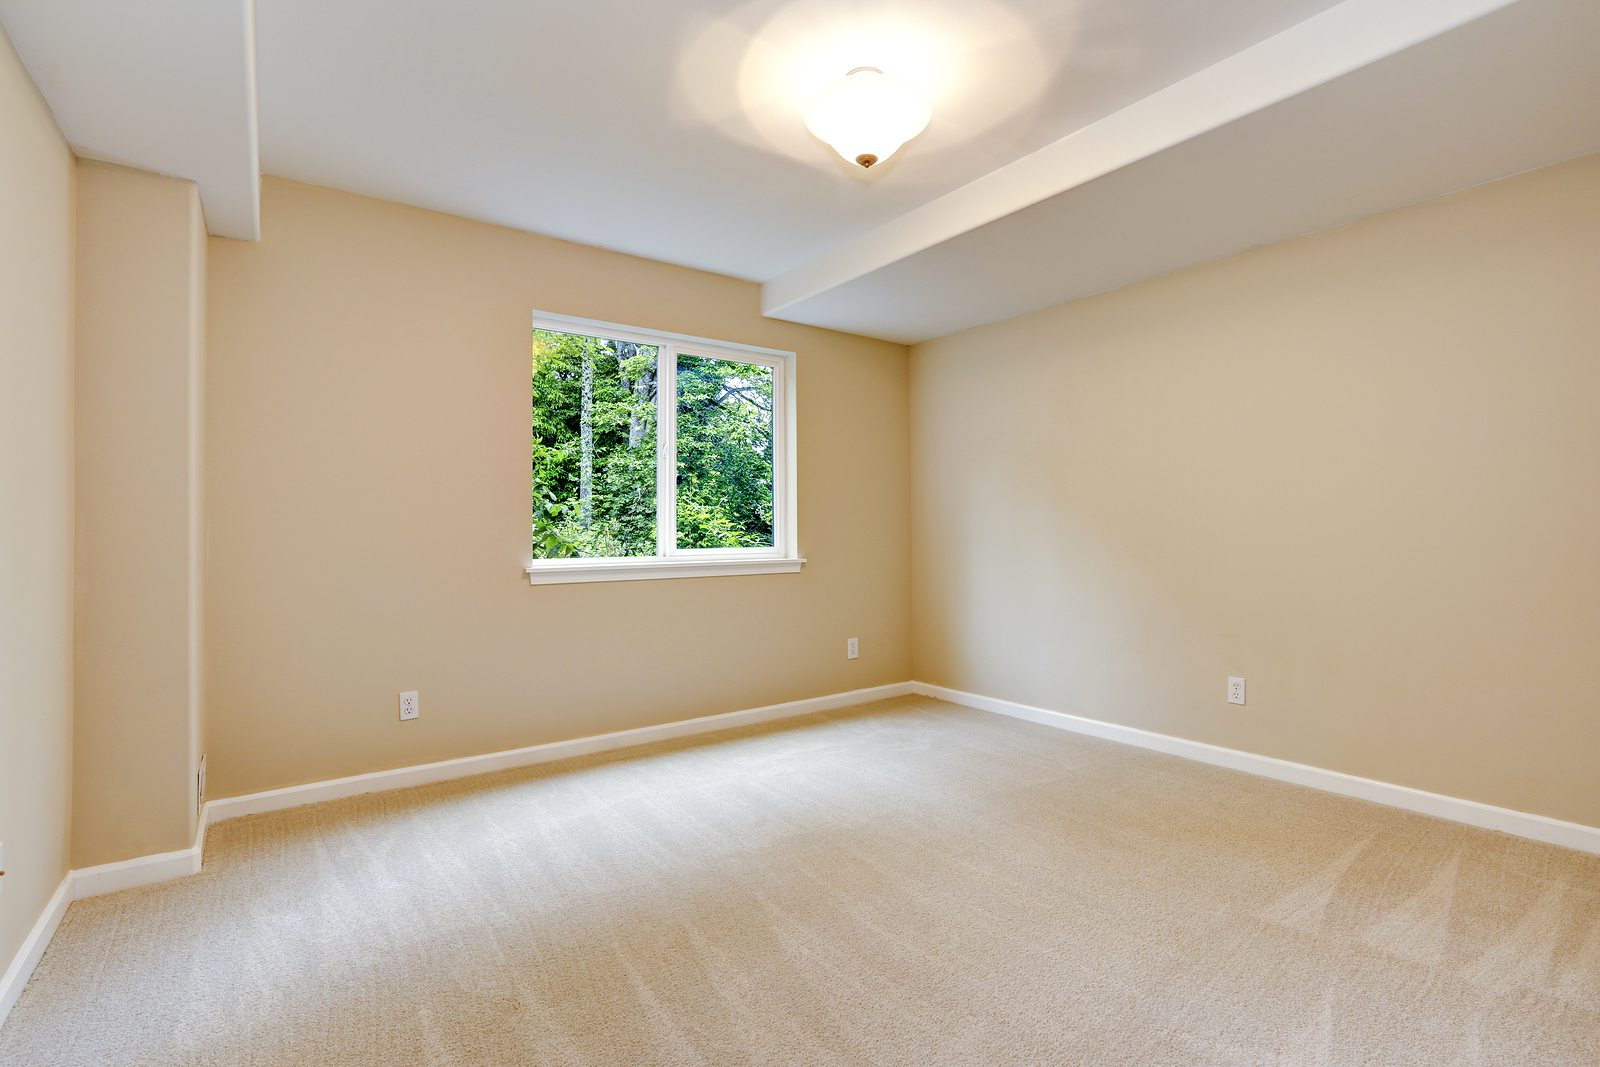 Bright empty bedroom in light ivory tone with carpet floor and small window